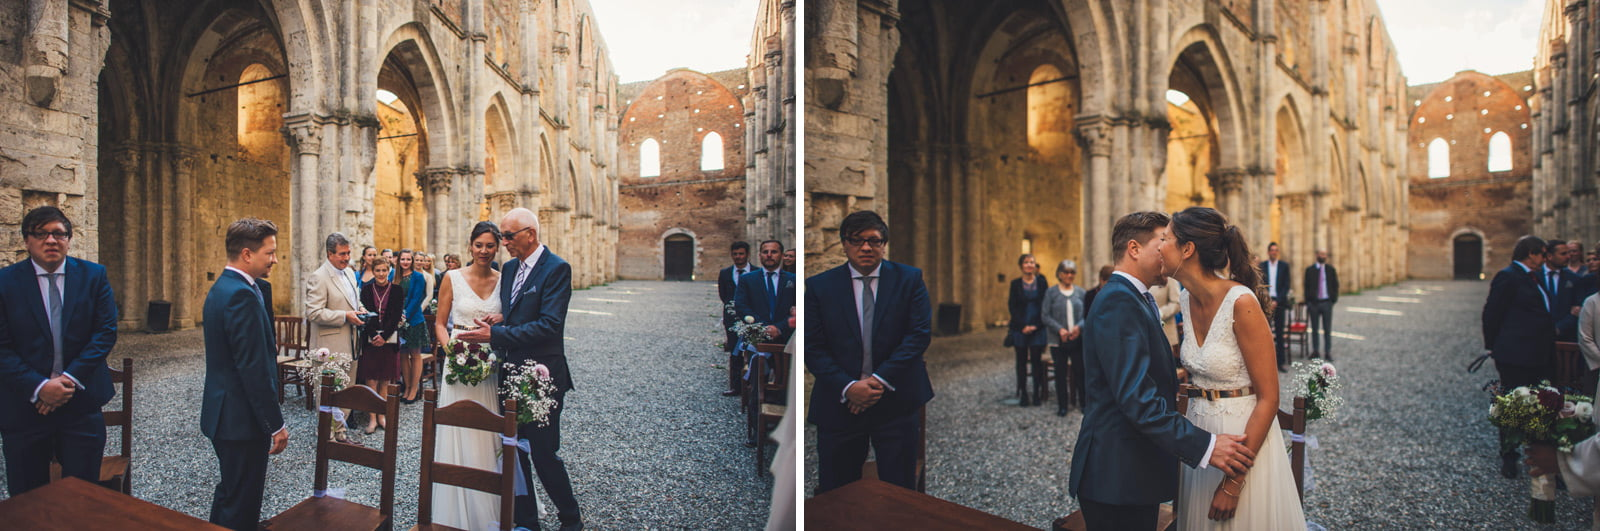 030-wedding-tuscany-san-galgano-siena-photographer